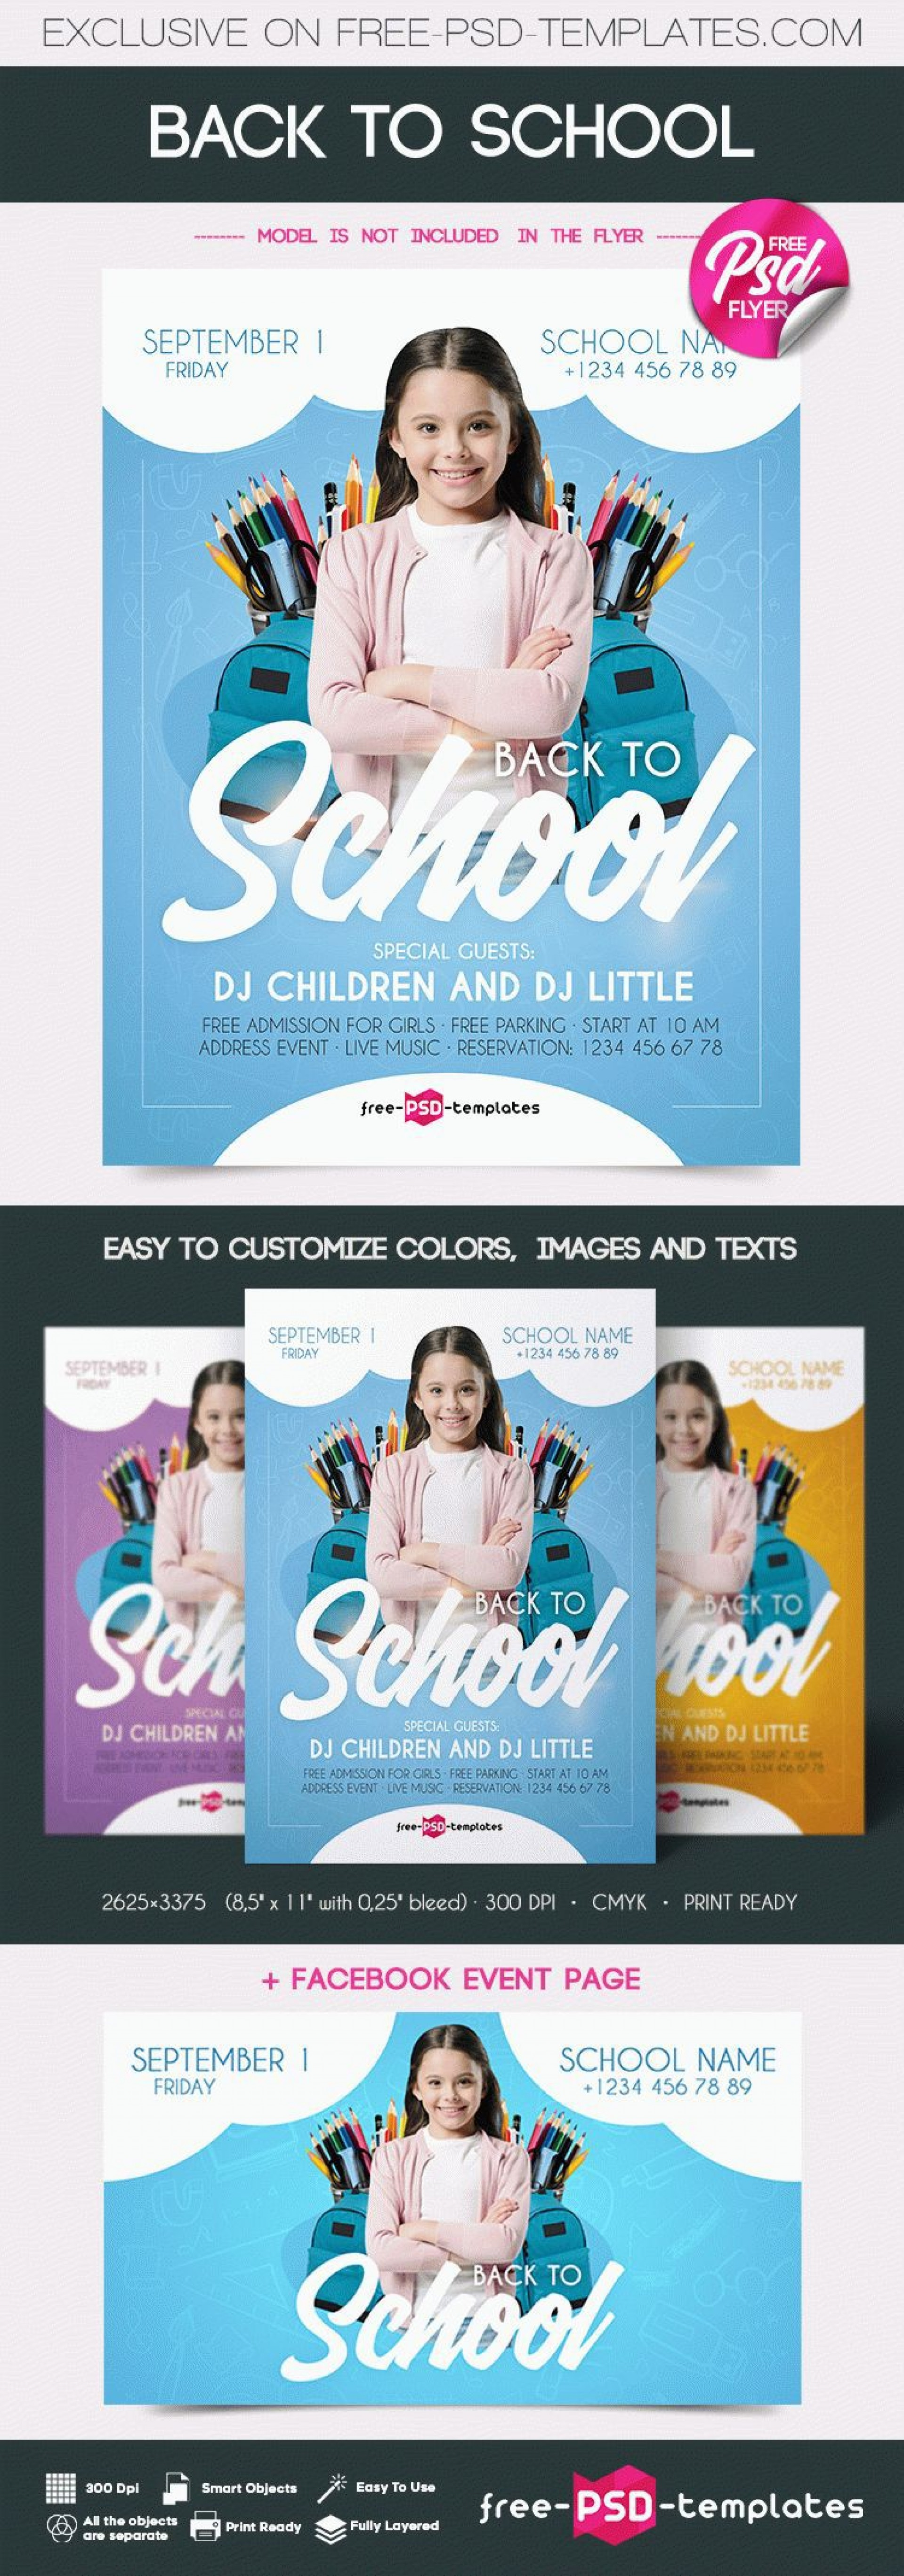 006 Excellent Free School Flyer Template Concept  Templates Vacation Bible For Microsoft Word Event1920